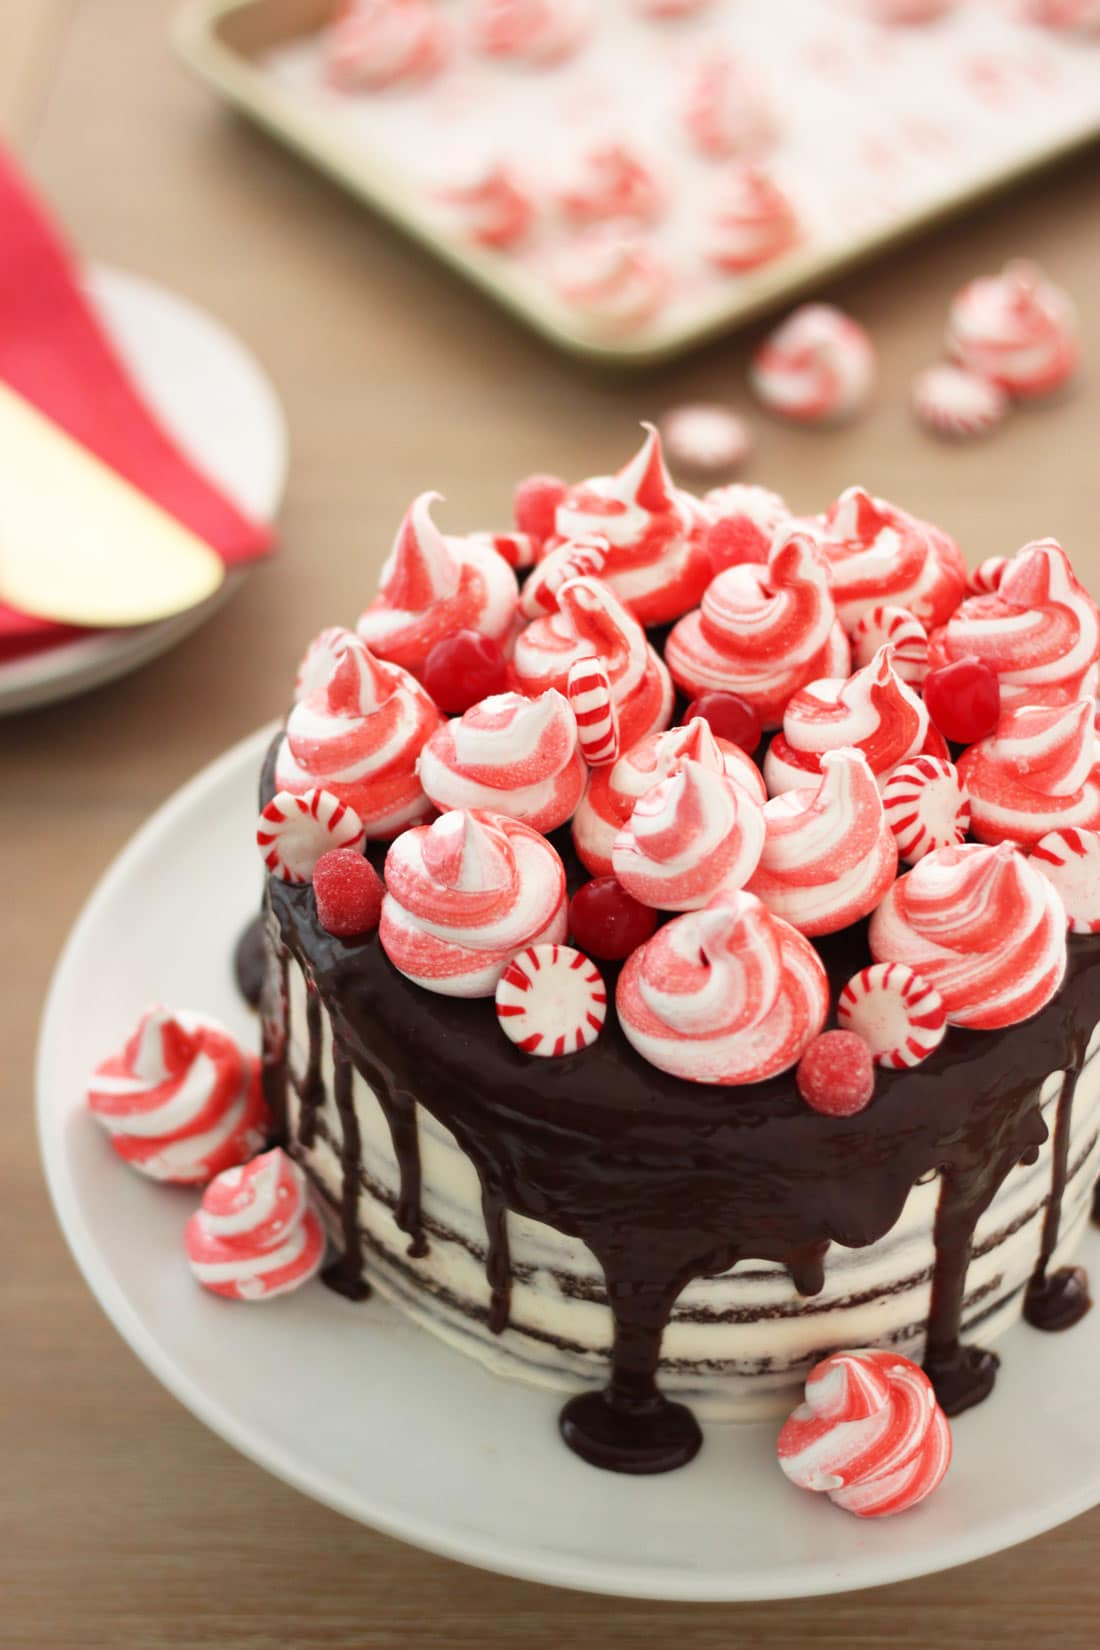 Miss Jones Baking Peppermint Chocolate Layer Cake with Chocolate Ganache picture of top of cake